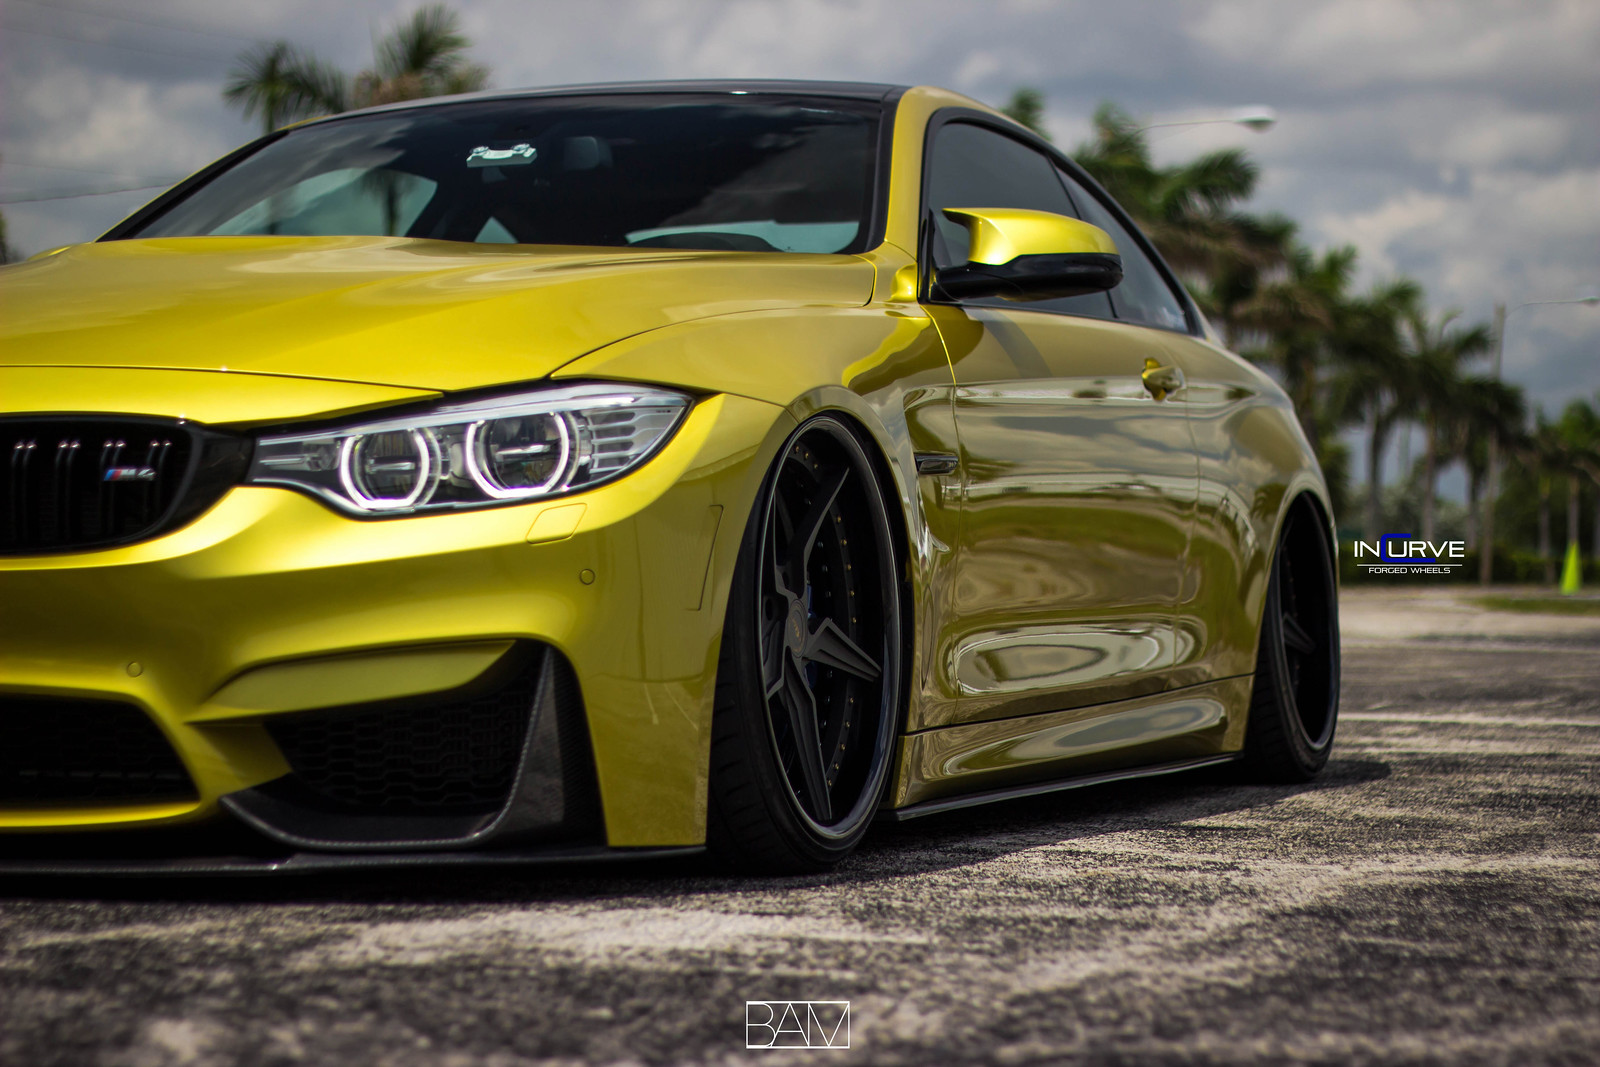 Bagged Modded Ay M4 Dct For Sale Or Lease Takeover